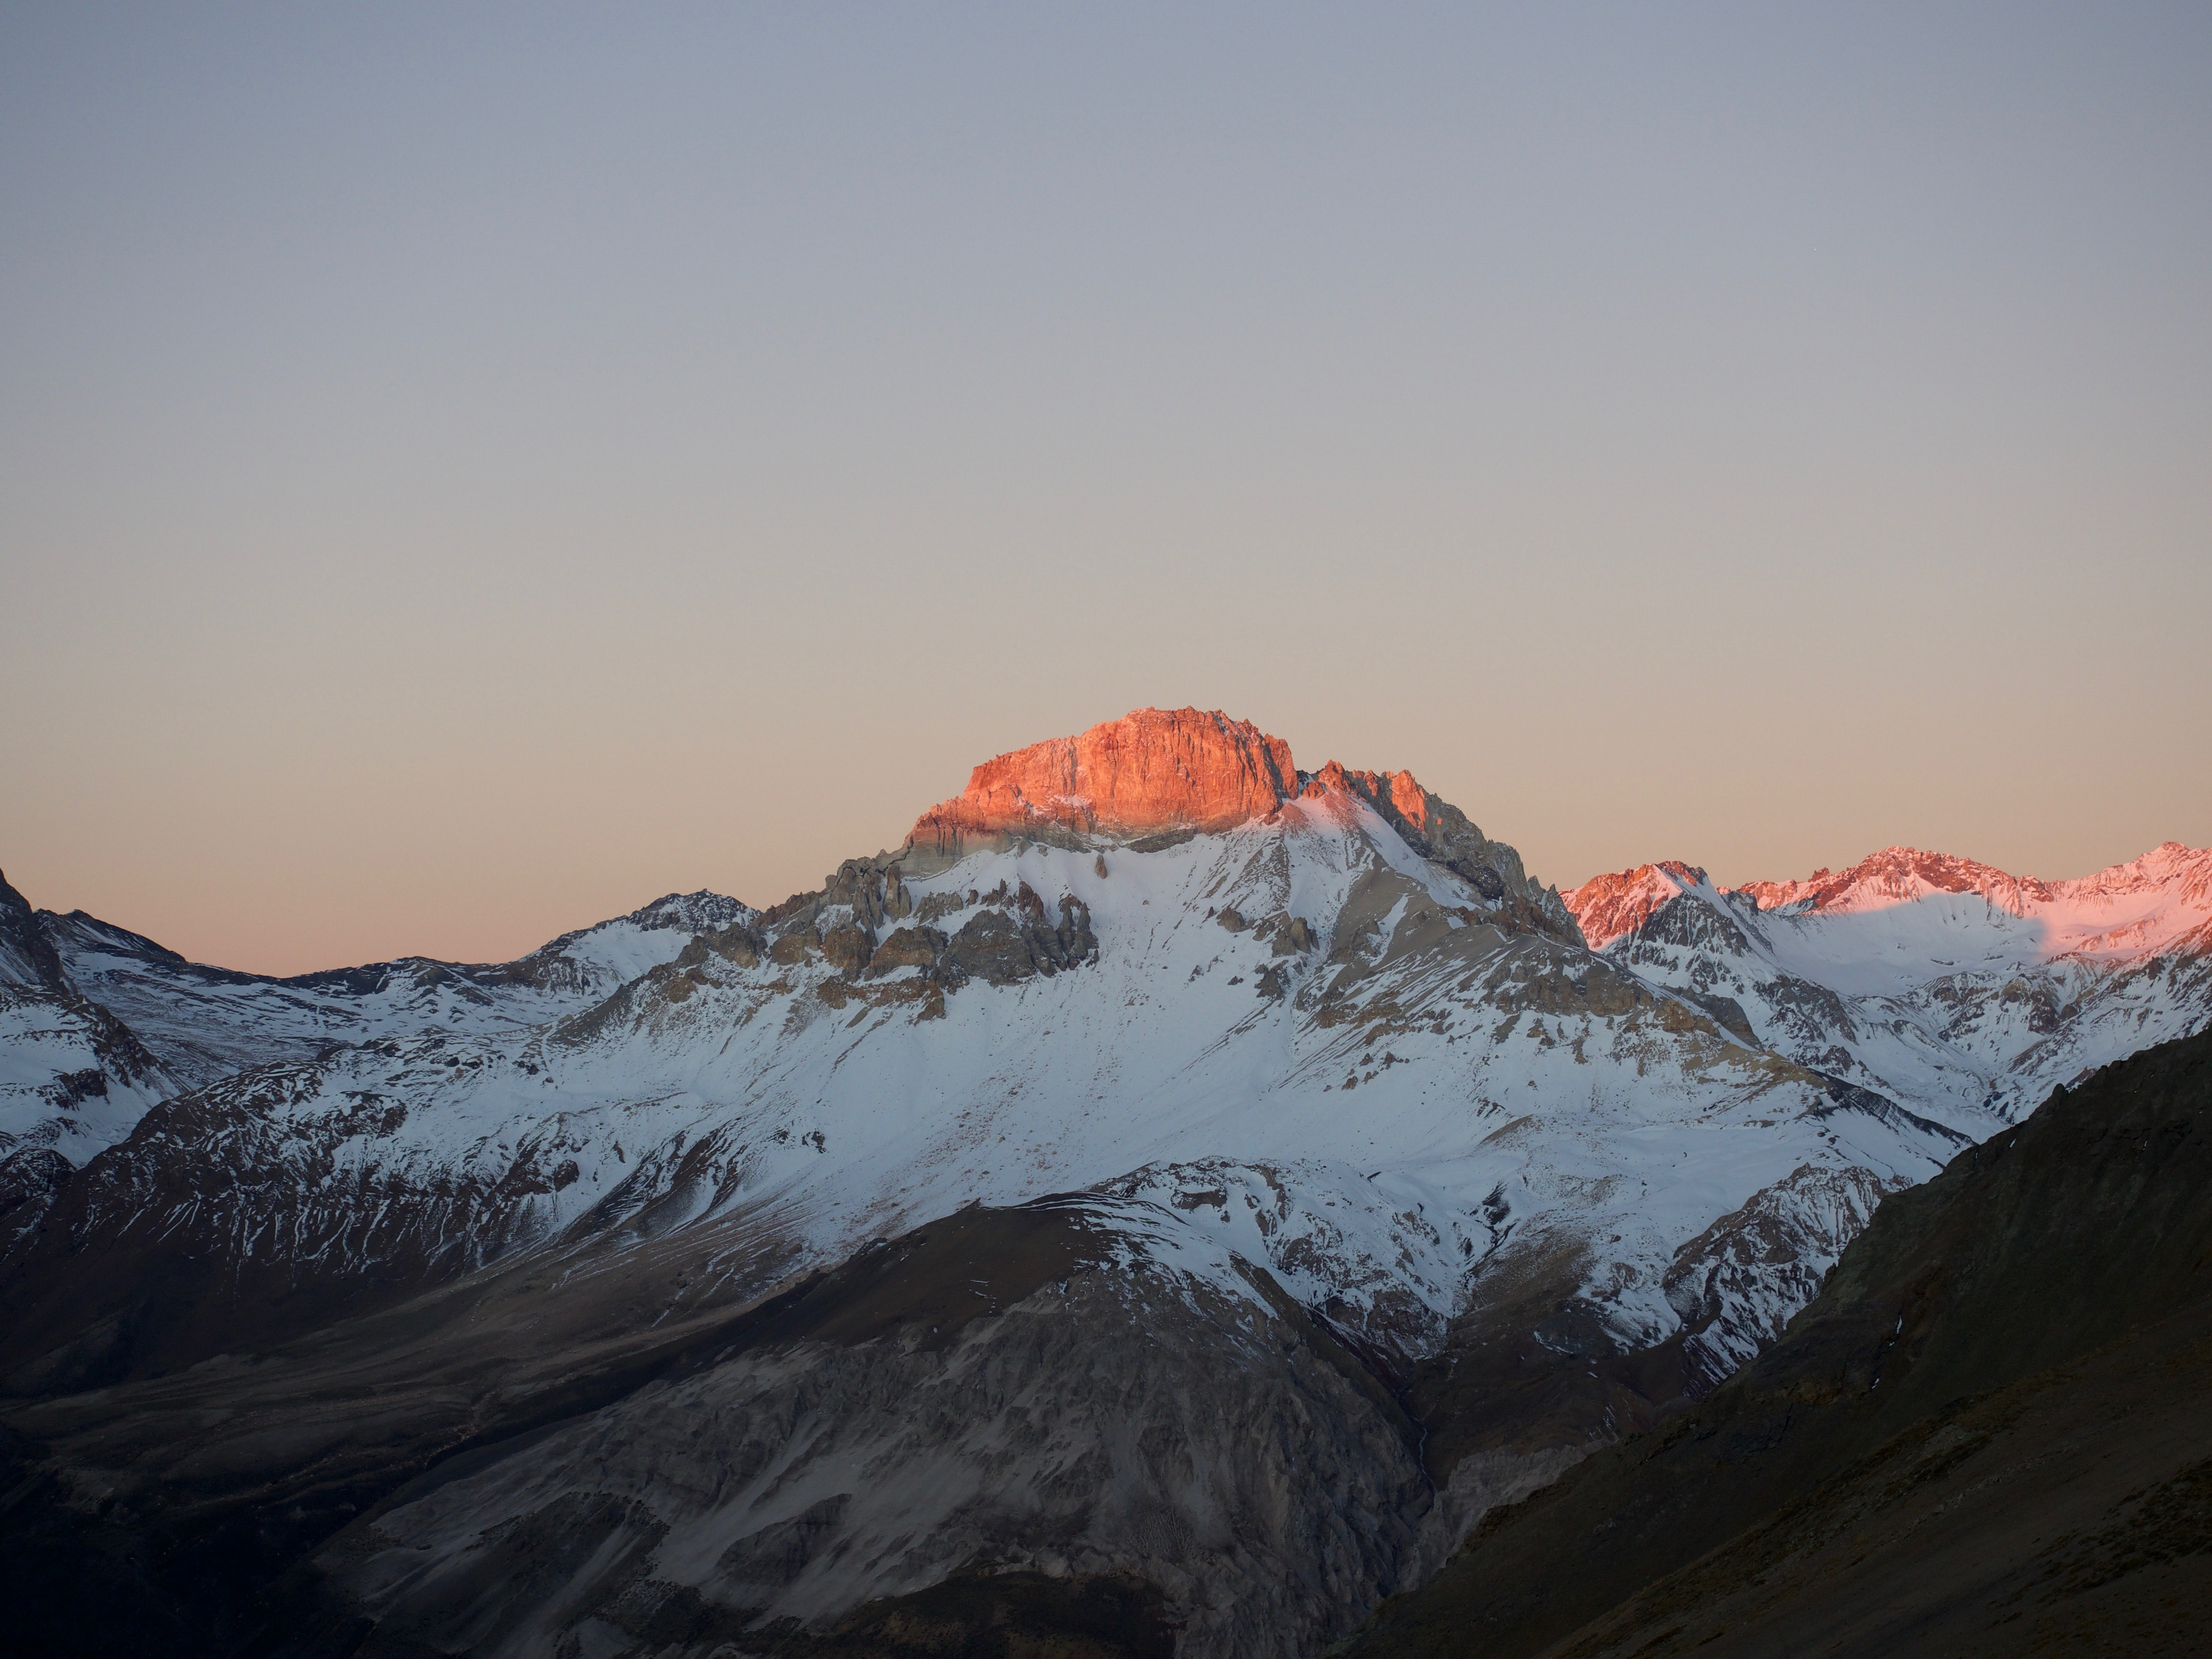 Chile's Cerro Puntiagudo covered in snow in the sunlight